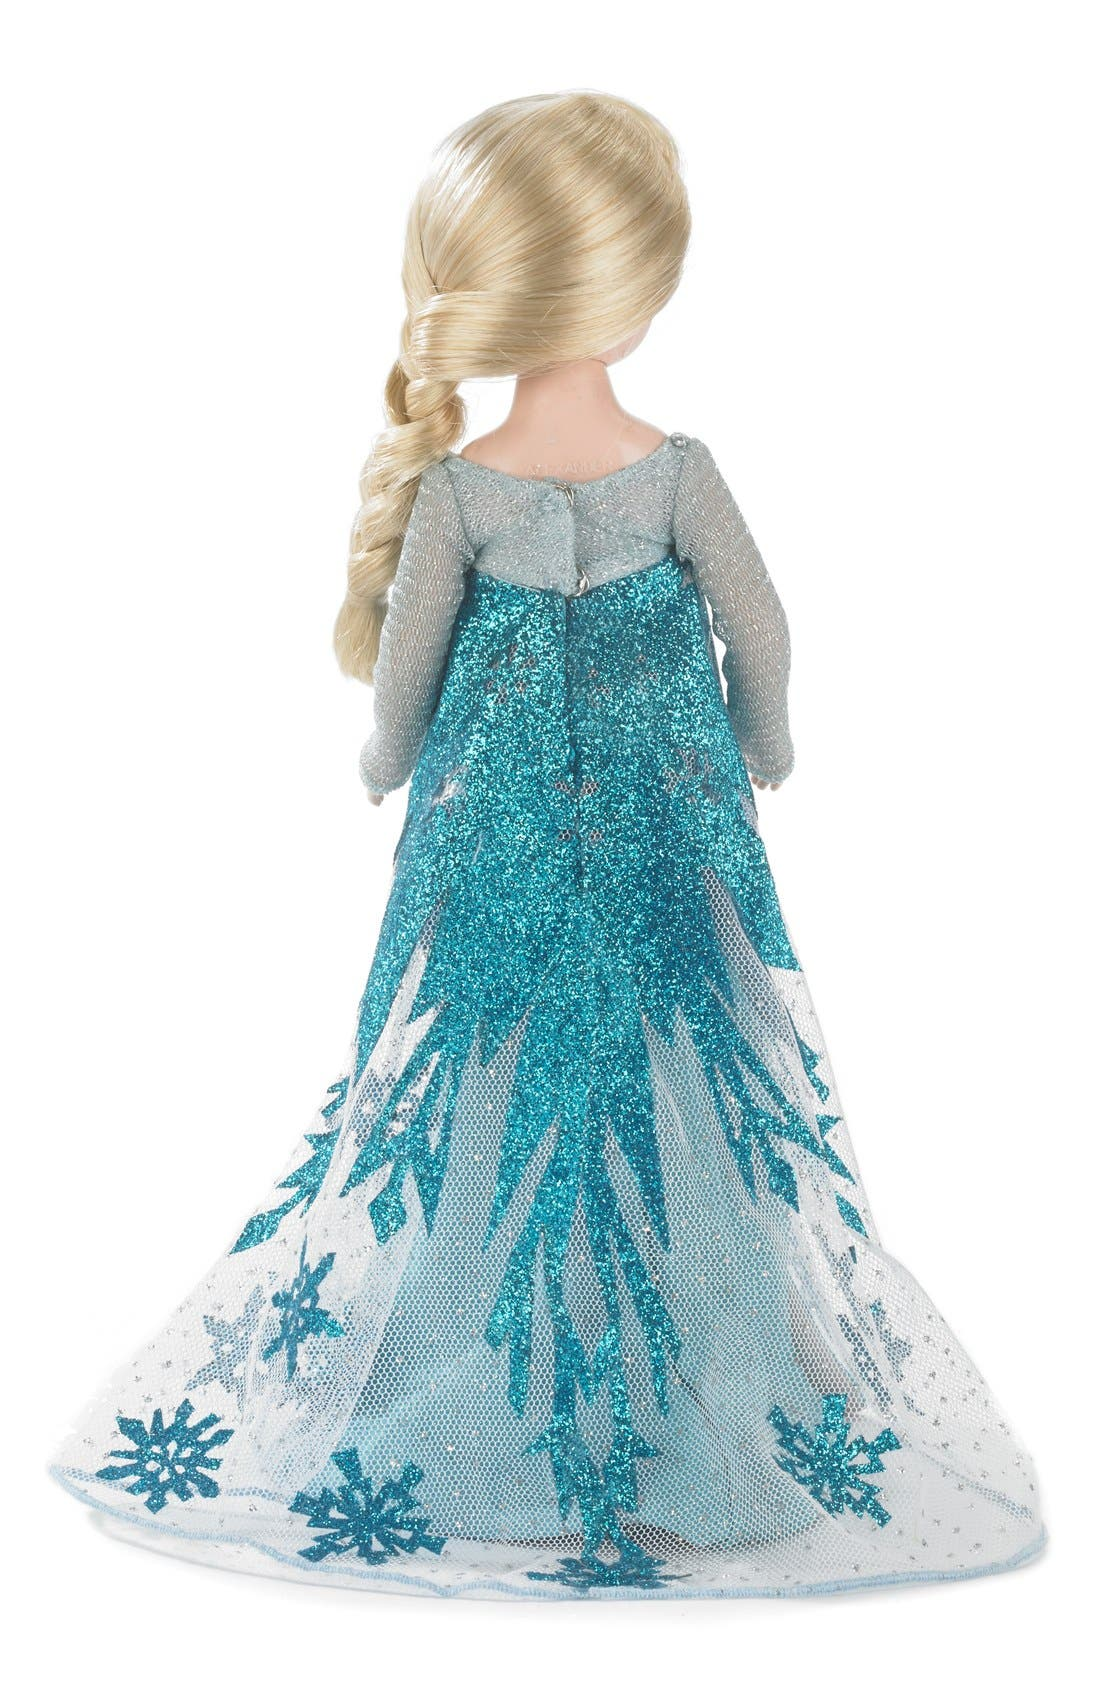 Disney<sup>®</sup> Frozen Elsa 10 Inch Collectible Doll,                             Alternate thumbnail 2, color,                             000